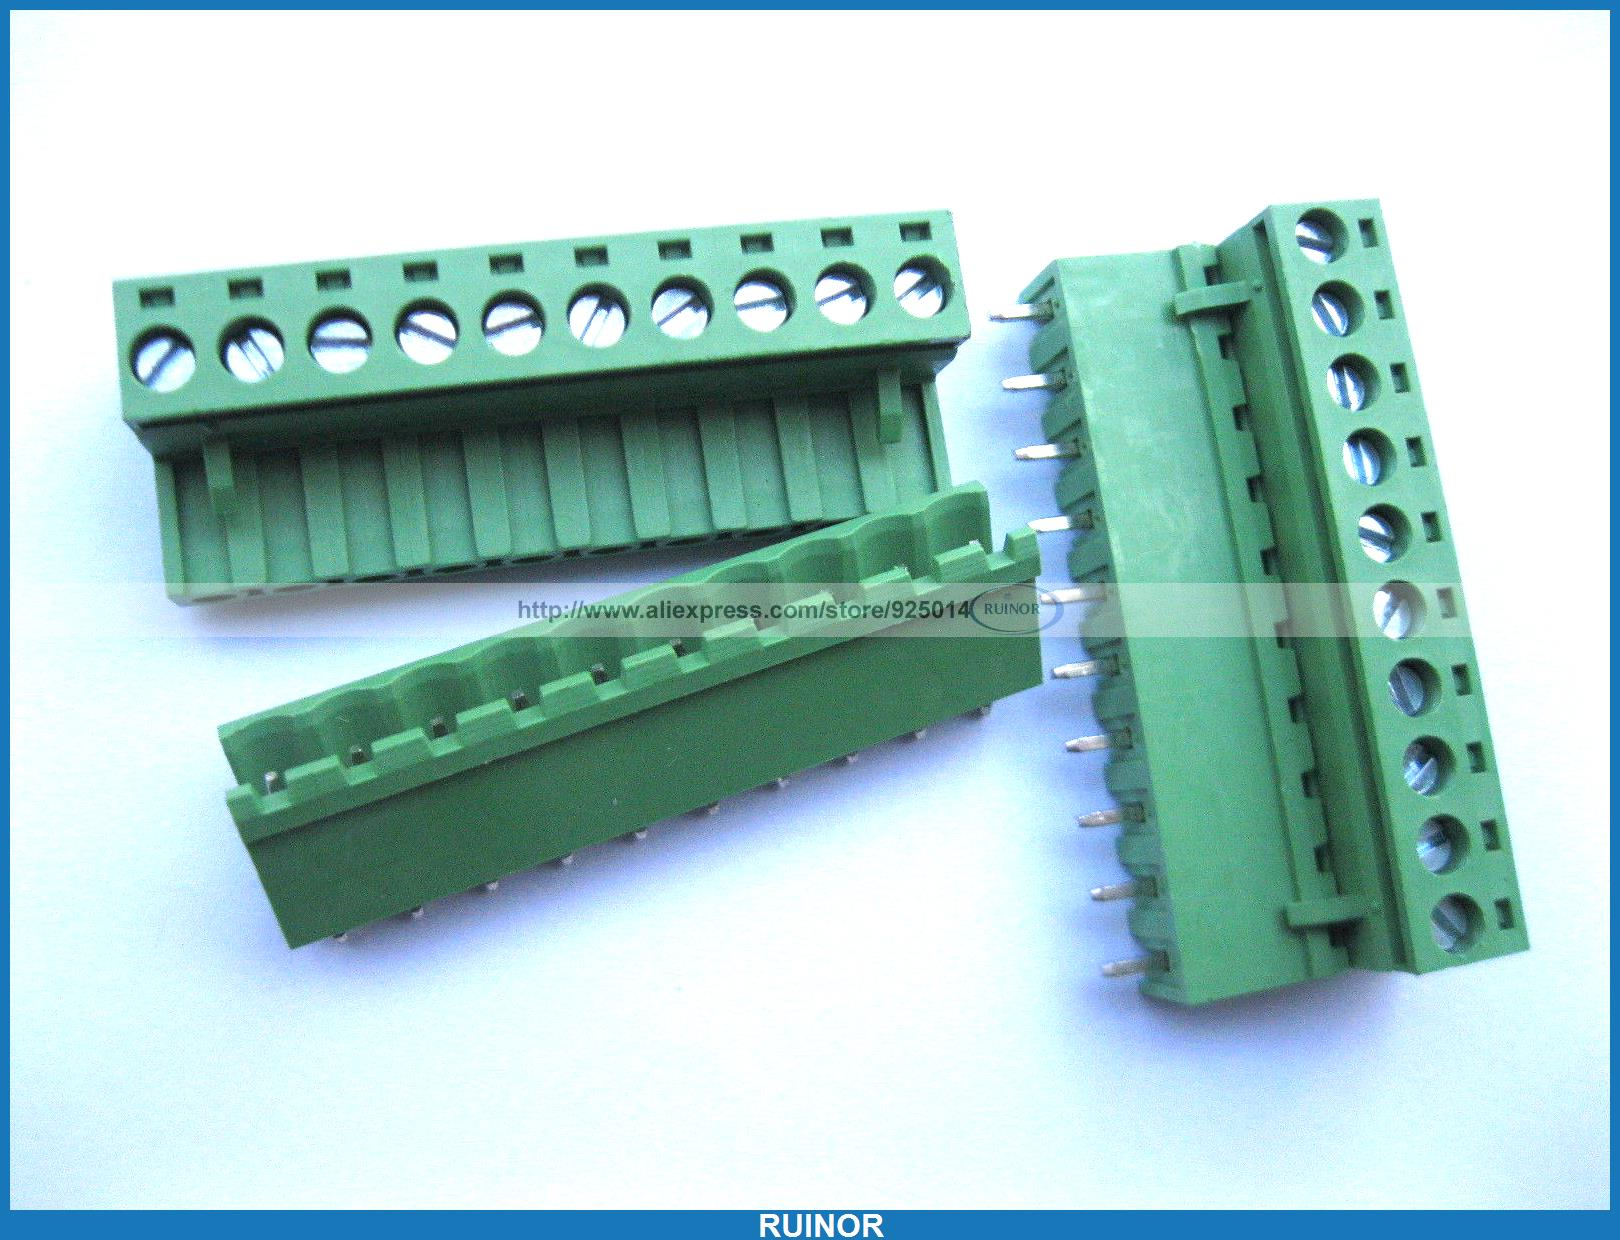 50 Pcs 5 08mm Straight 10 Pin Screw Terminal Block Connector Pluggable Green 1825242[pluggable terminal blocks 14 pos 5 08mm pitch thru h mr li